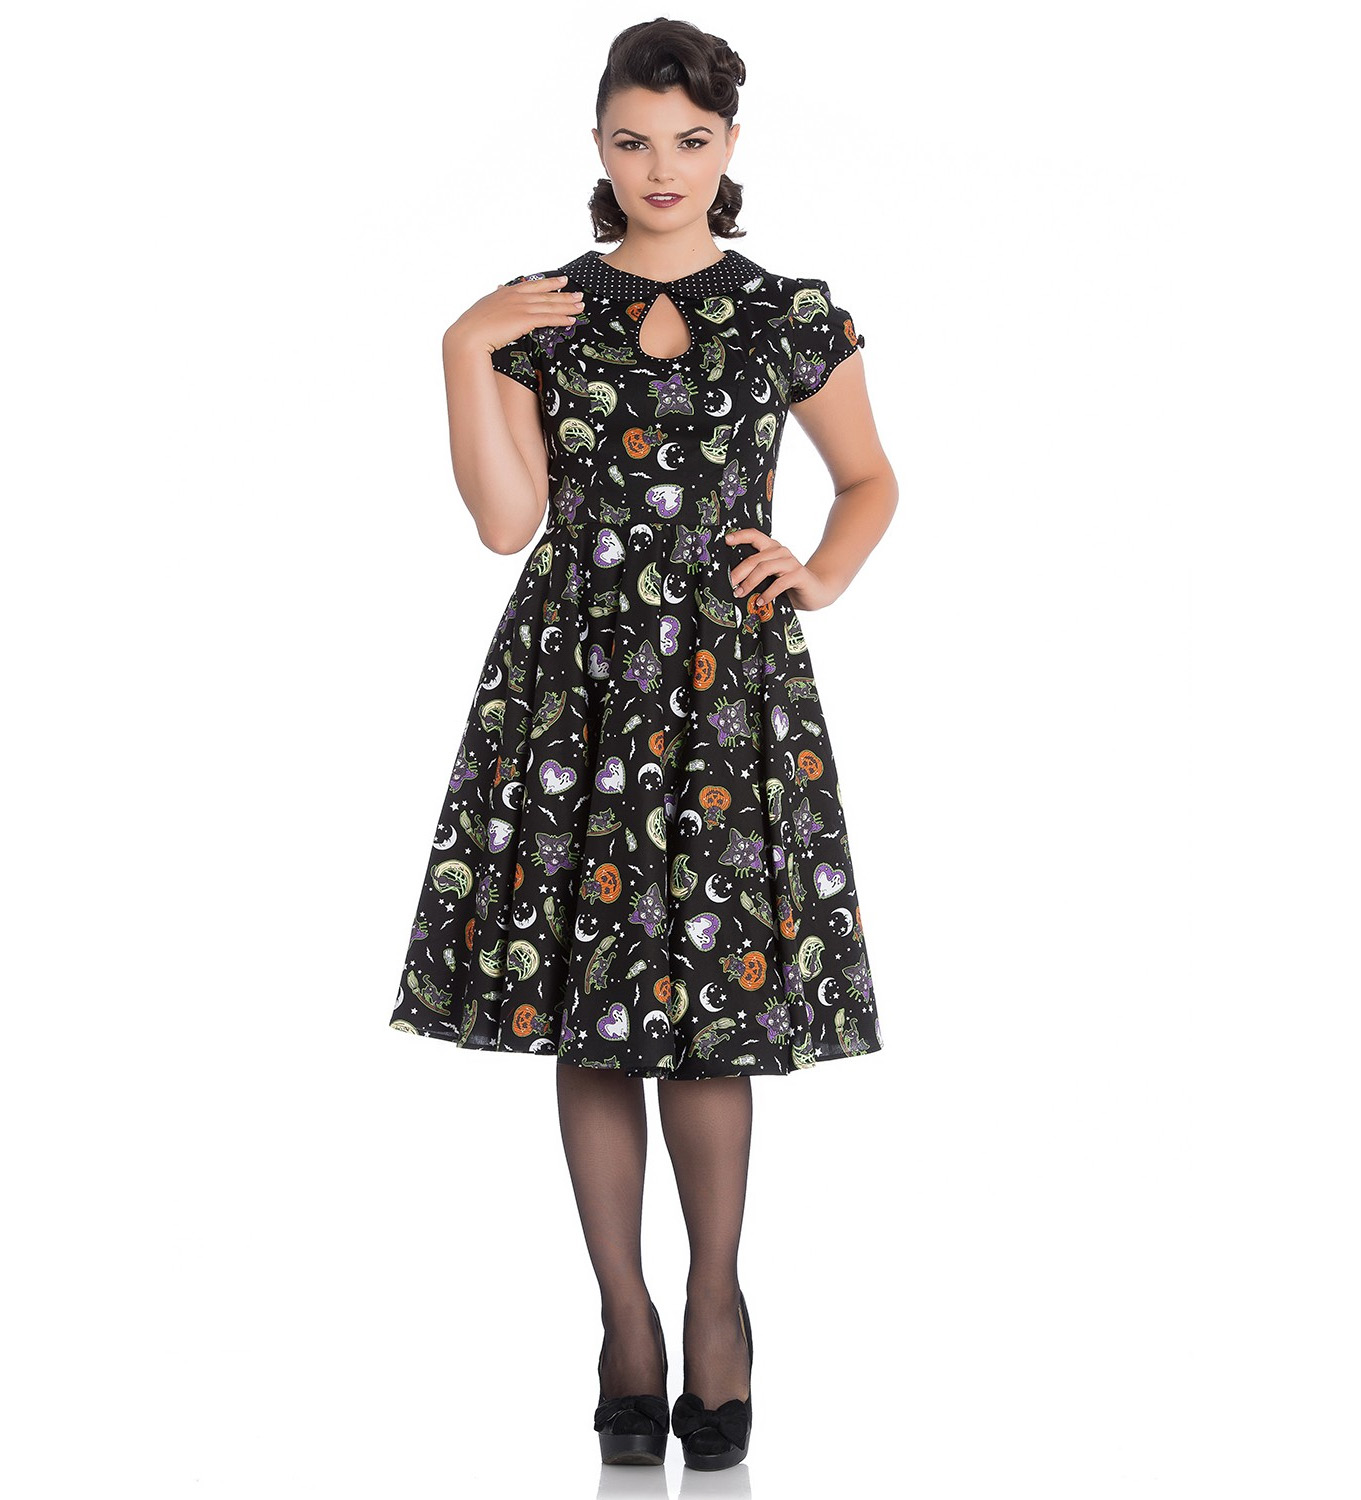 Hell-Bunny-50s-Black-Pin-Up-Dress-Horror-Witchy-SALEM-Halloween-All-Sizes thumbnail 9